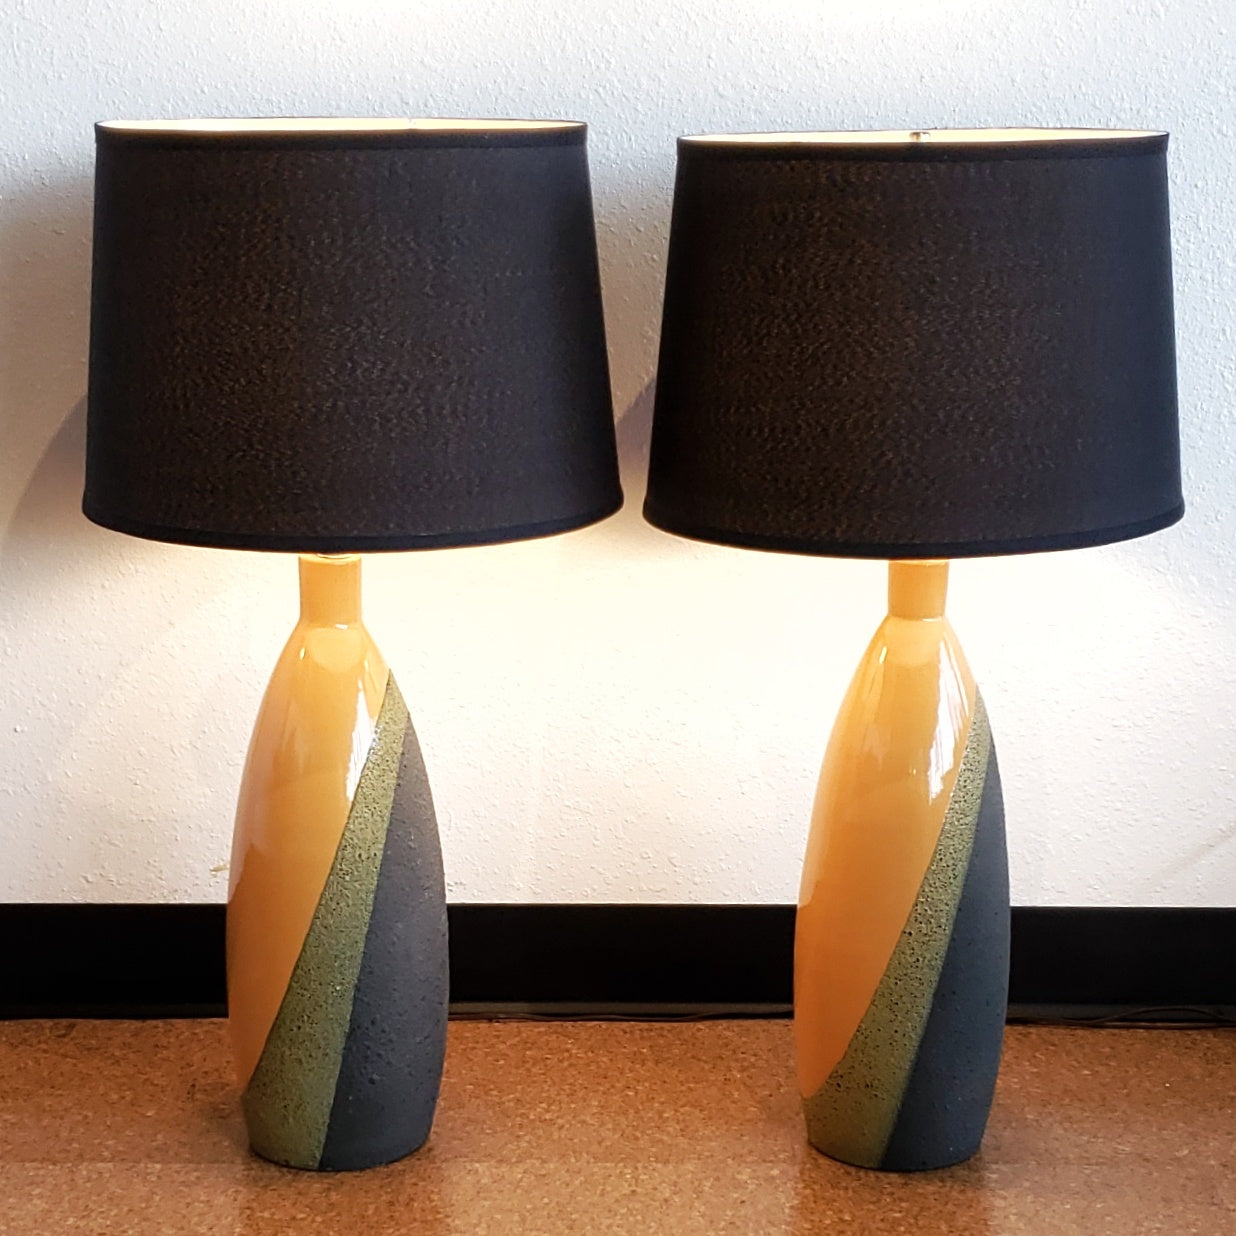 ETTORE SOTTSASS TABLE LAMPS FOR BITOSSI